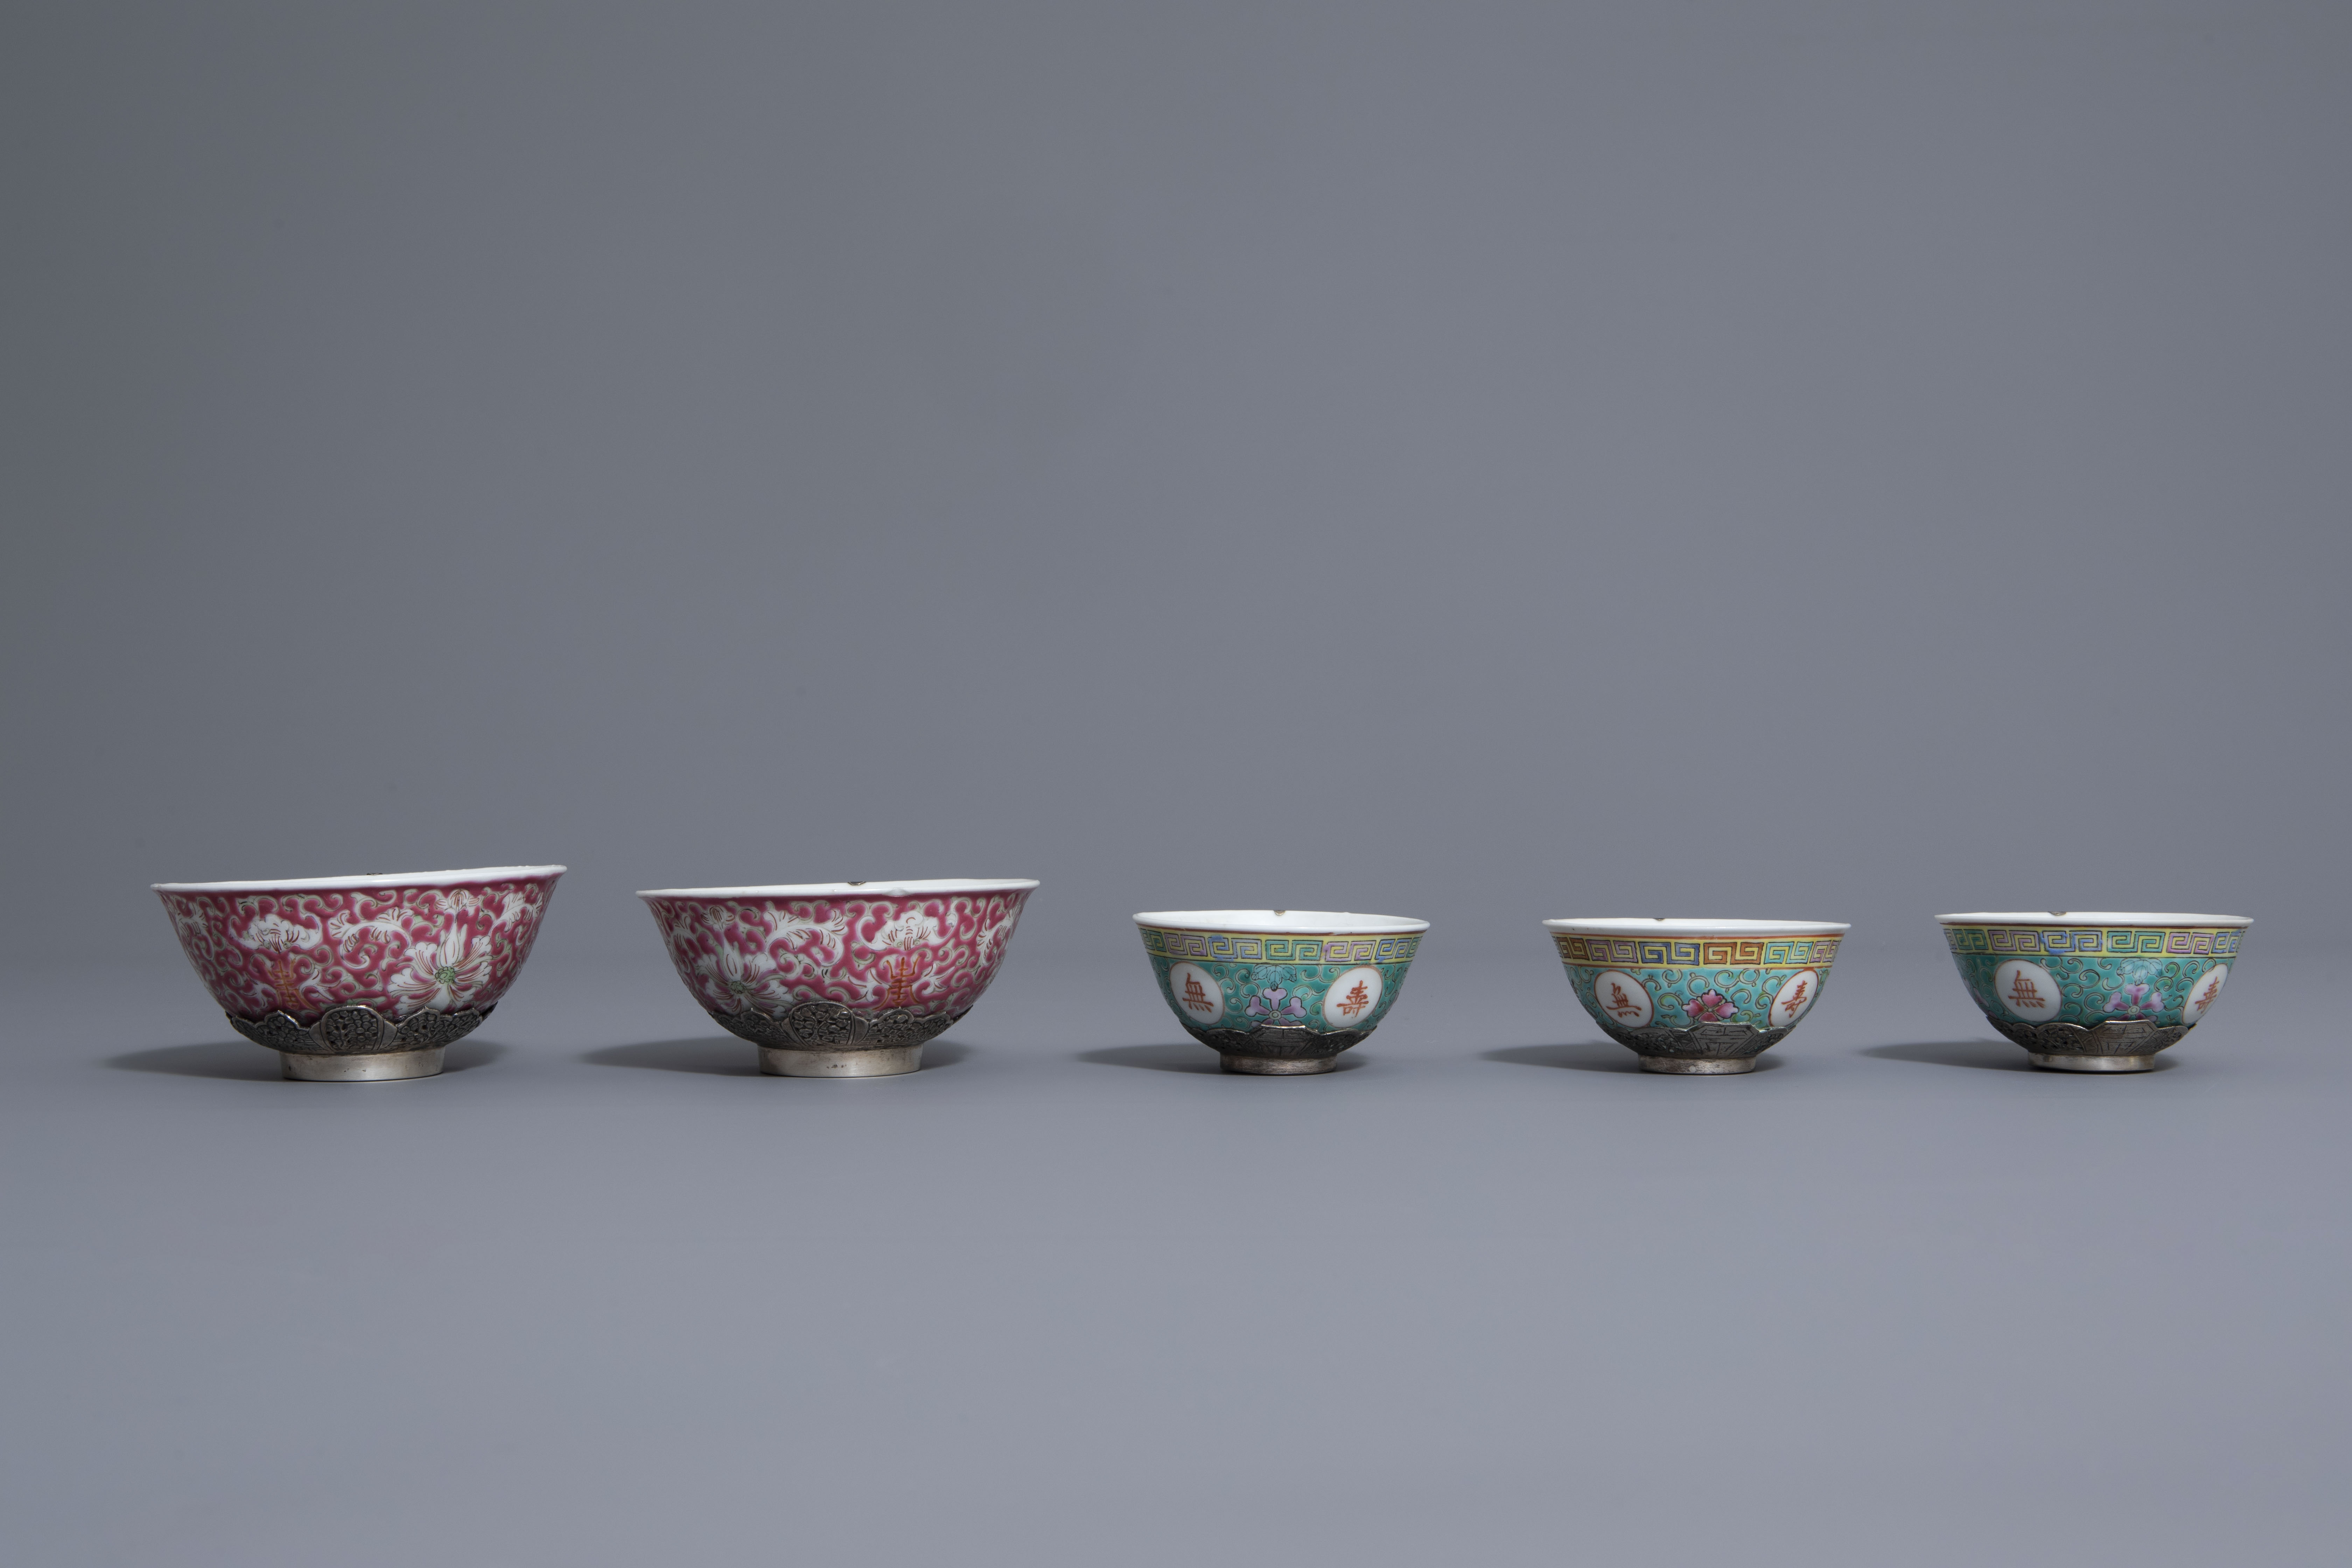 Five Chinese famille rose and silver cups and saucers and a bowl, 19th/20th C. - Image 7 of 17